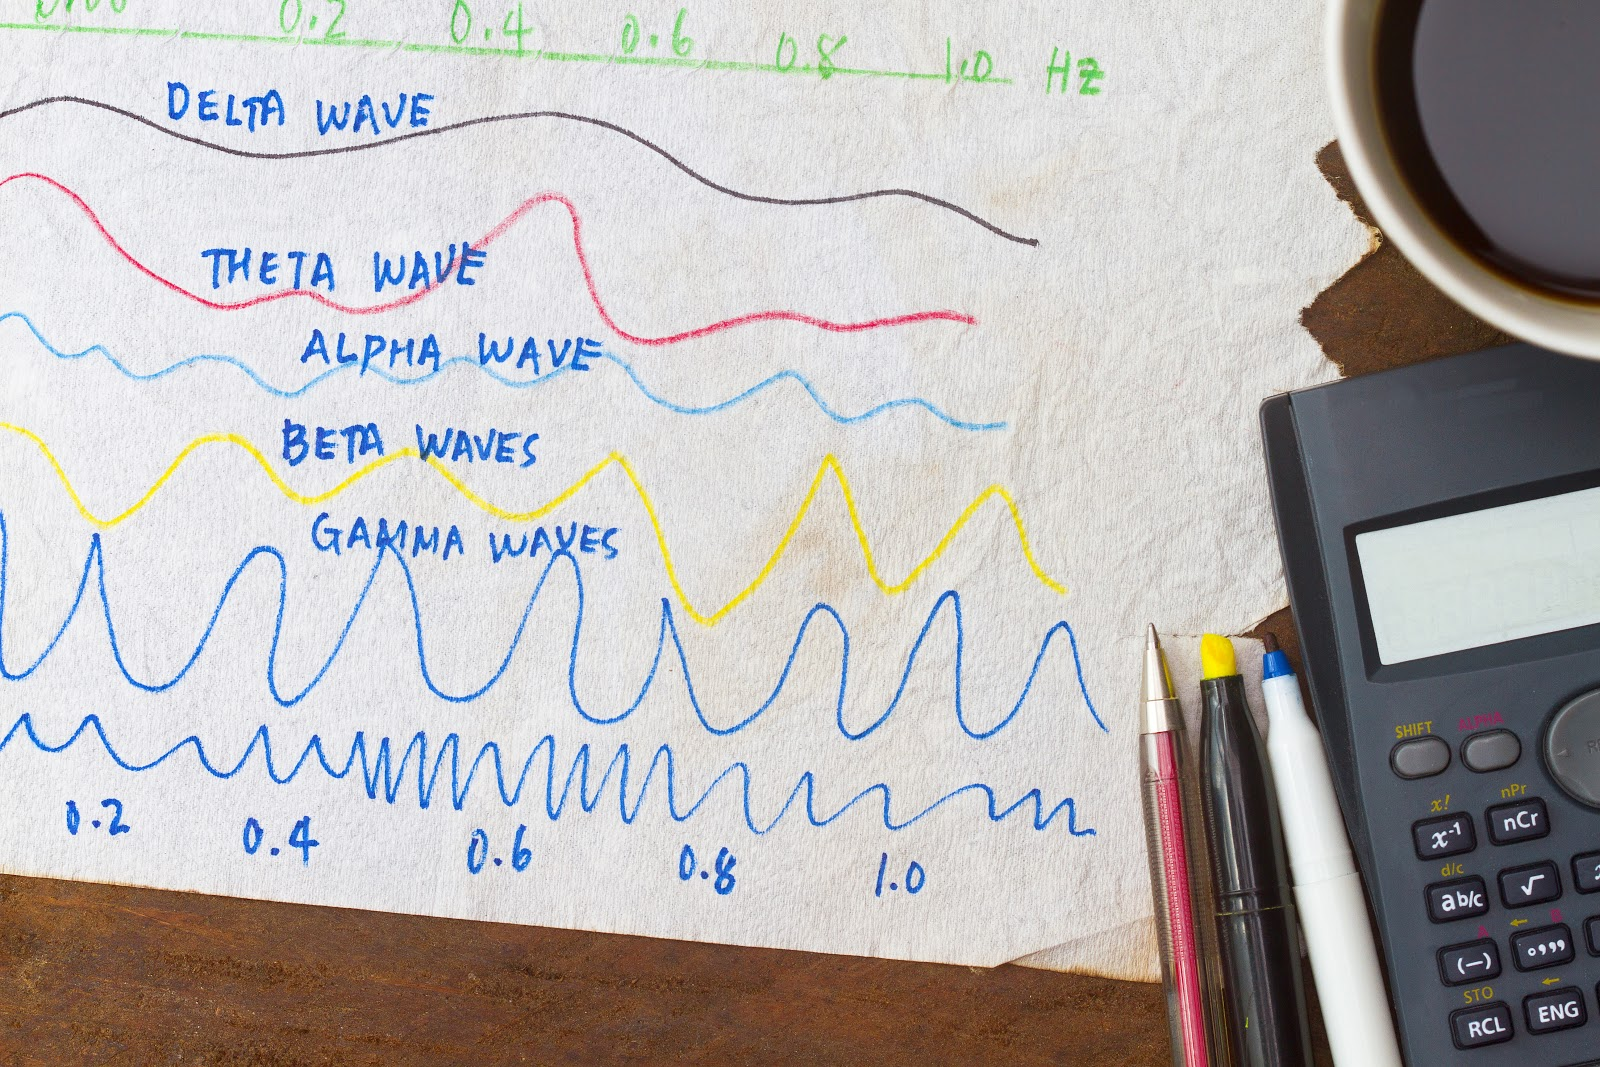 All about waves- sketches on napkin ideas about waves.